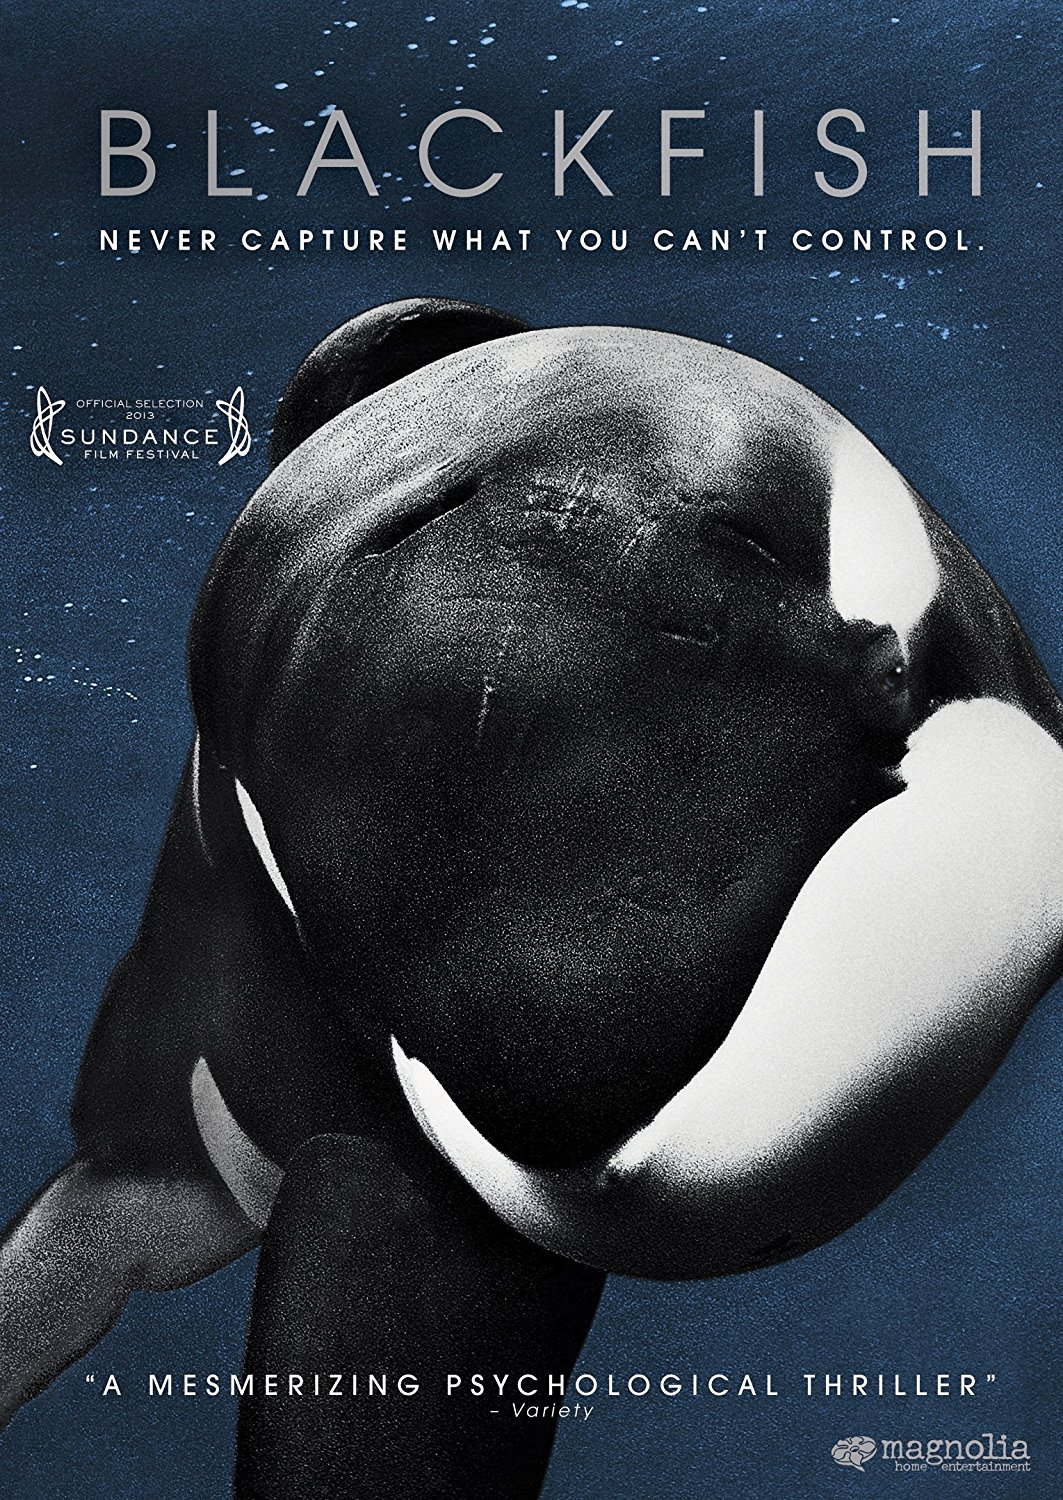 Blackfish made a splash upon its 2013 release, taking on the entire SeaWorld business model of training whales for entertainment